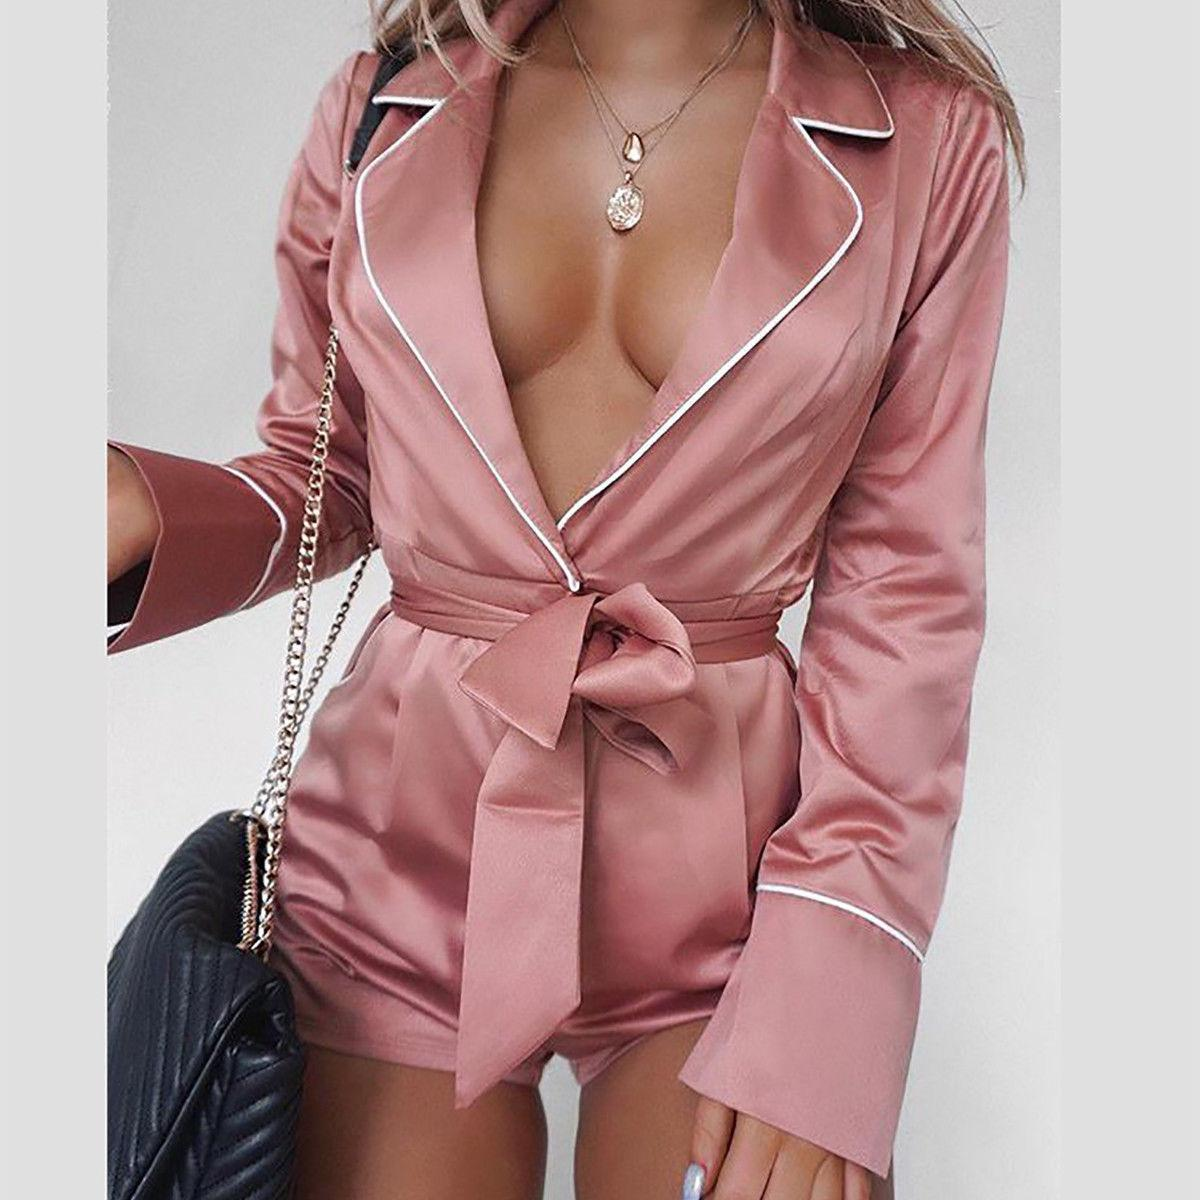 Women Fashion Sexy Jumpsuits Romper 4 Colors Long Sleeve Turn-Down Collar V-Neck Sashes Belt Jumpsuits Romper